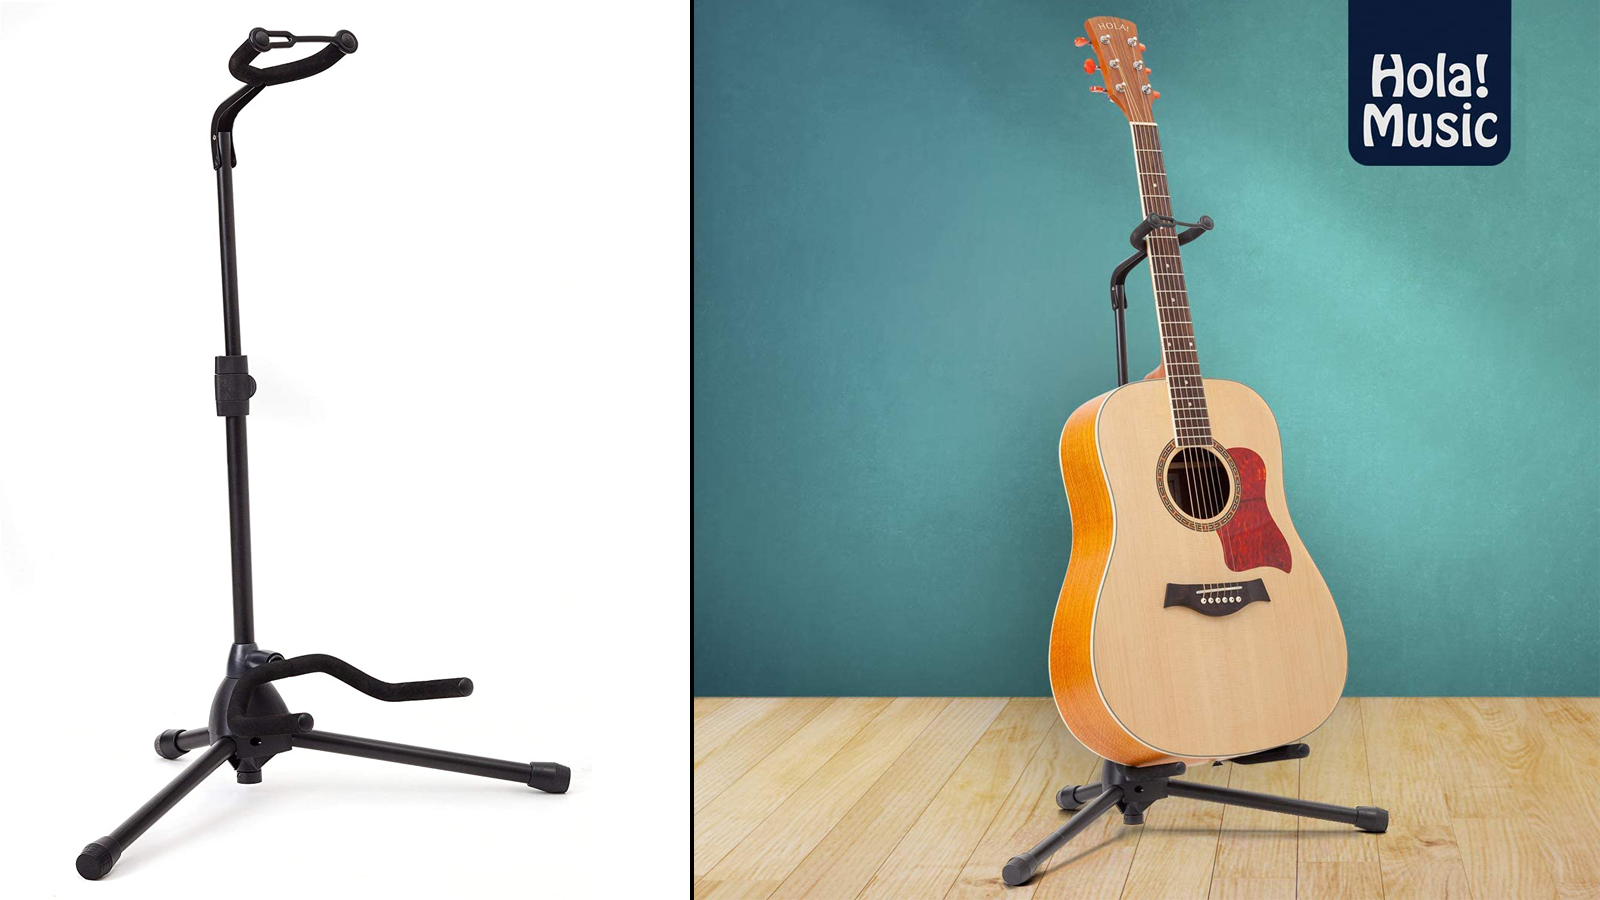 Store Your Guitar and Other Stringed Instruments in This Universal Guitar Stand